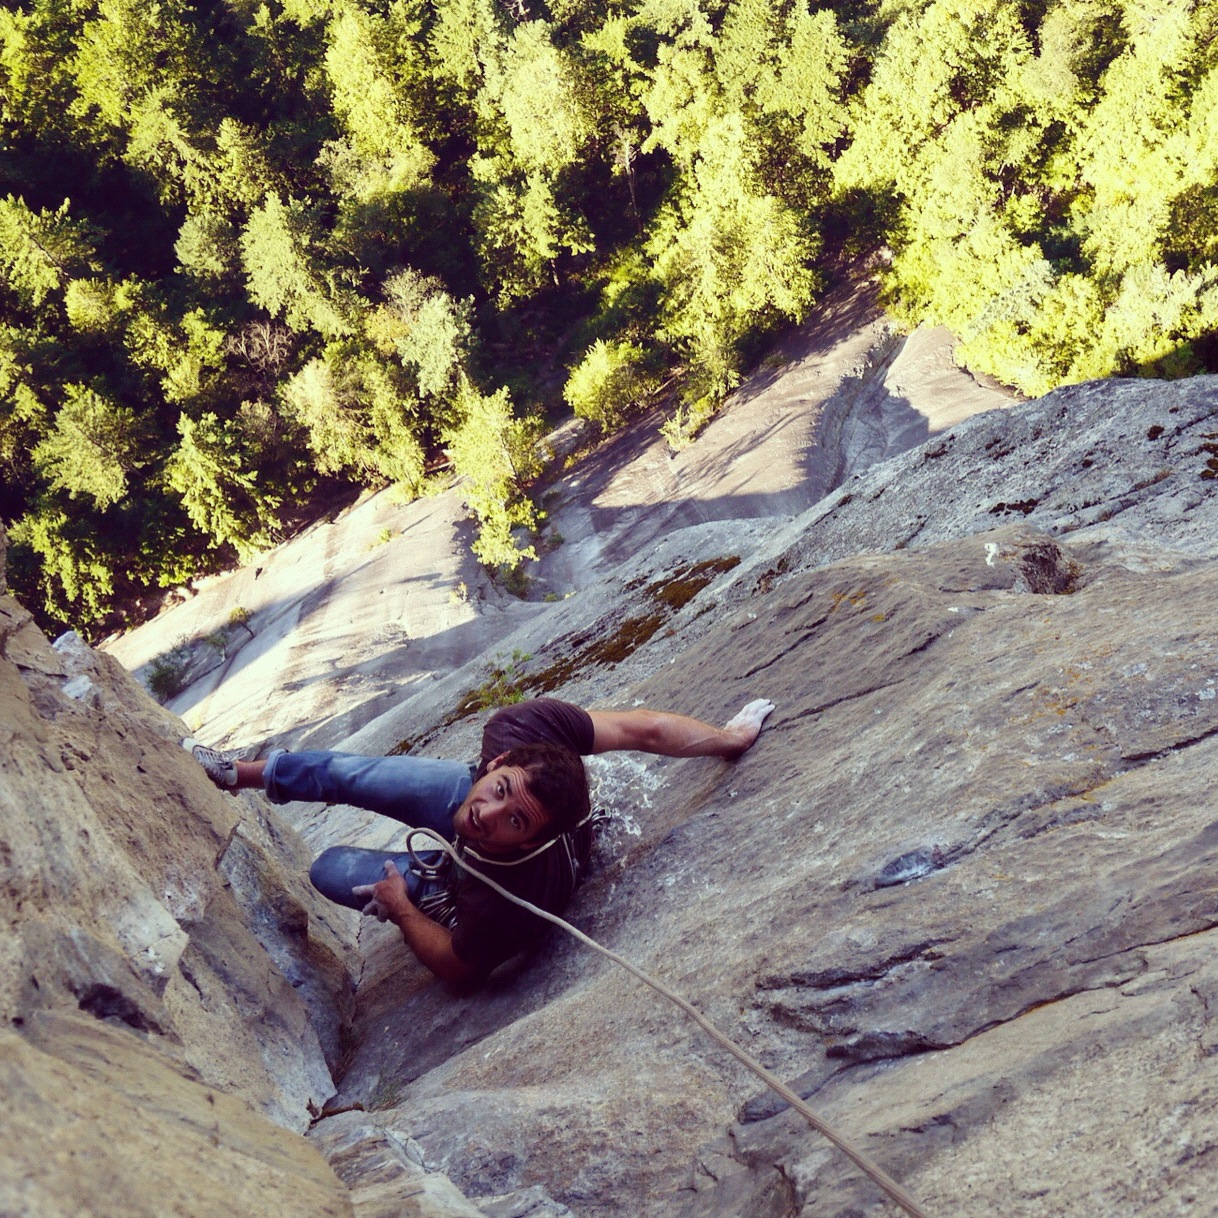 Multi-Pitch Climbing course - Squamish